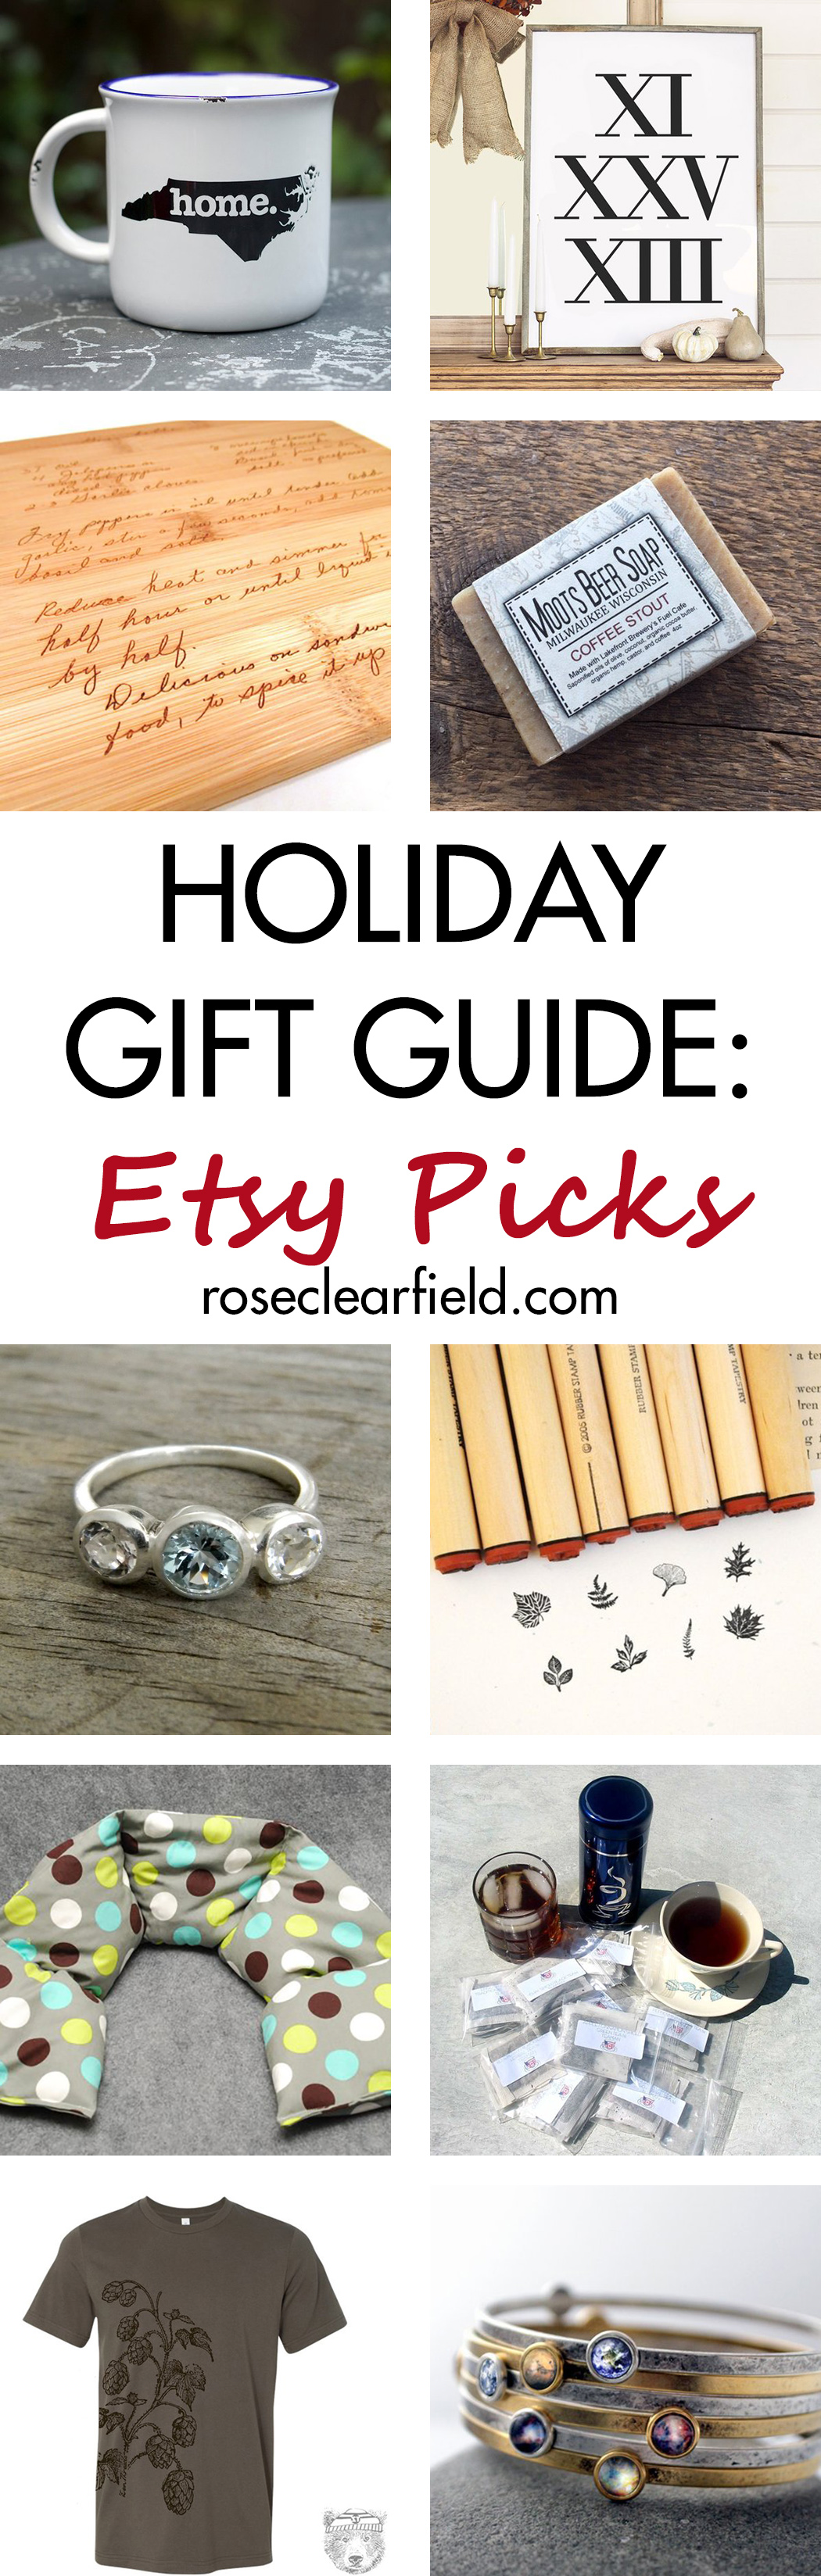 Holiday Gift Guide: Etsy Picks | http://www.roseclearfield.com